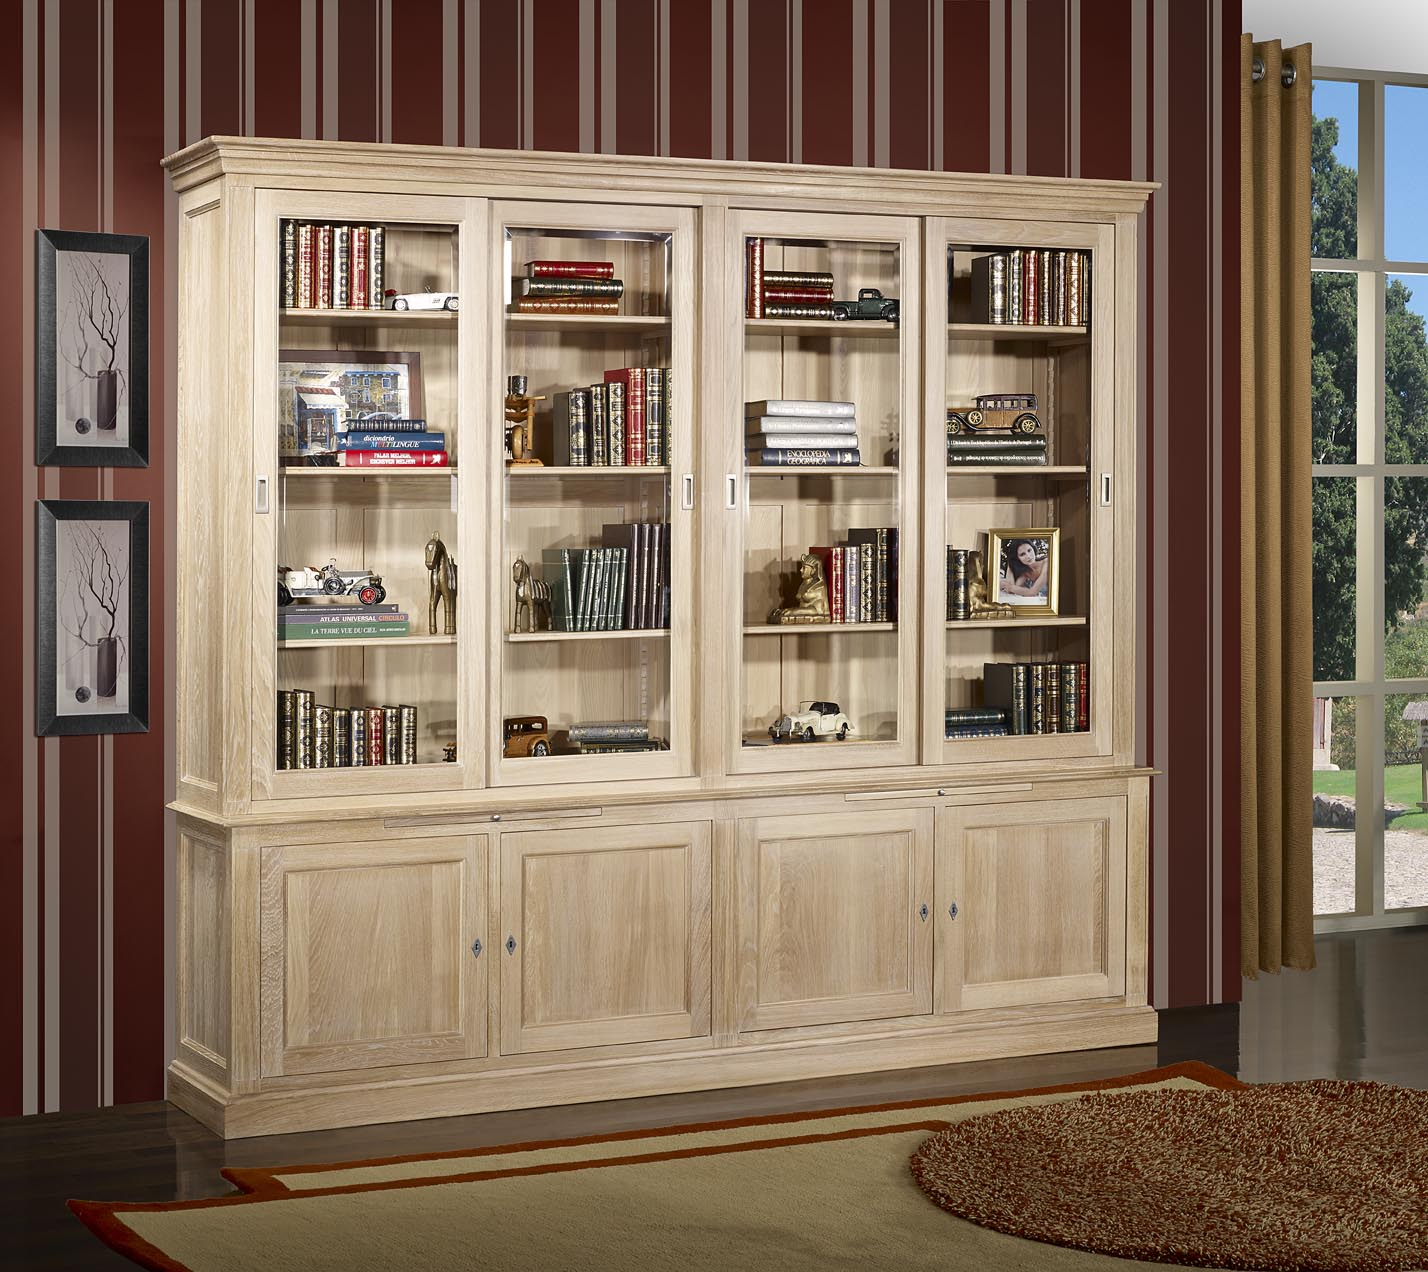 meuble tv bibliotheque bois brut sammlung. Black Bedroom Furniture Sets. Home Design Ideas